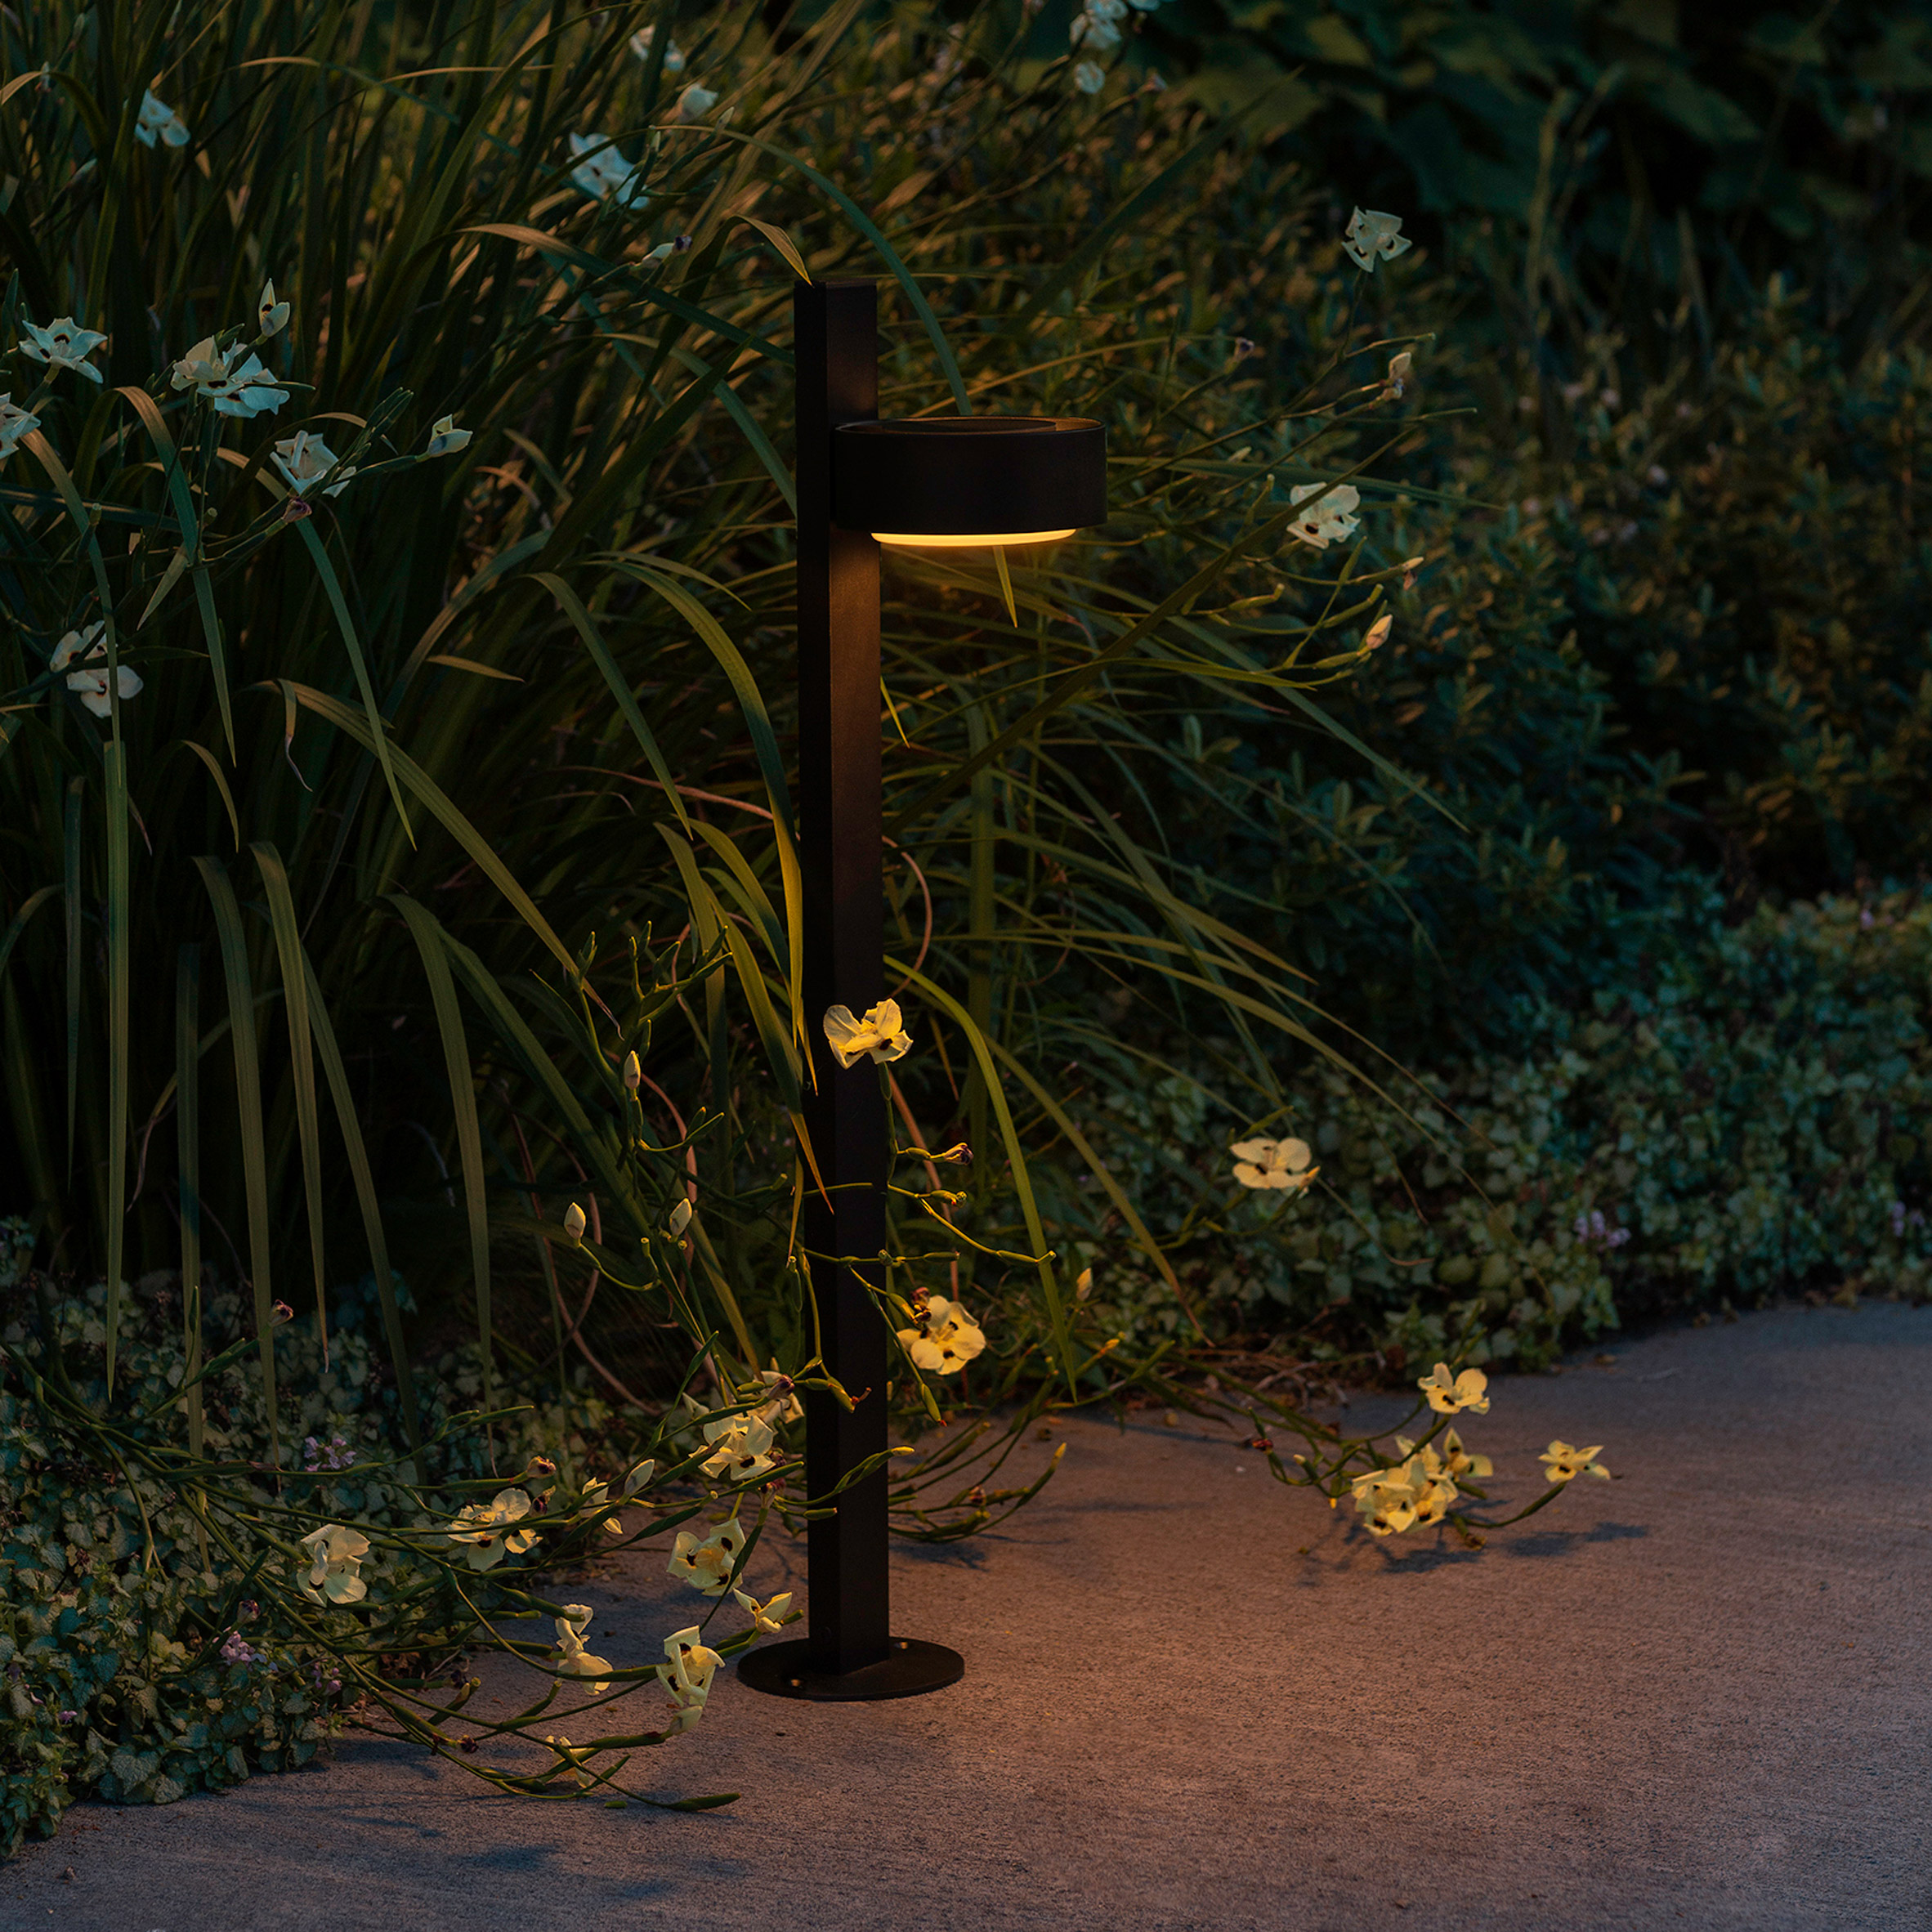 Plaff-on! outdoor wall light by Joan Gaspar for Marset